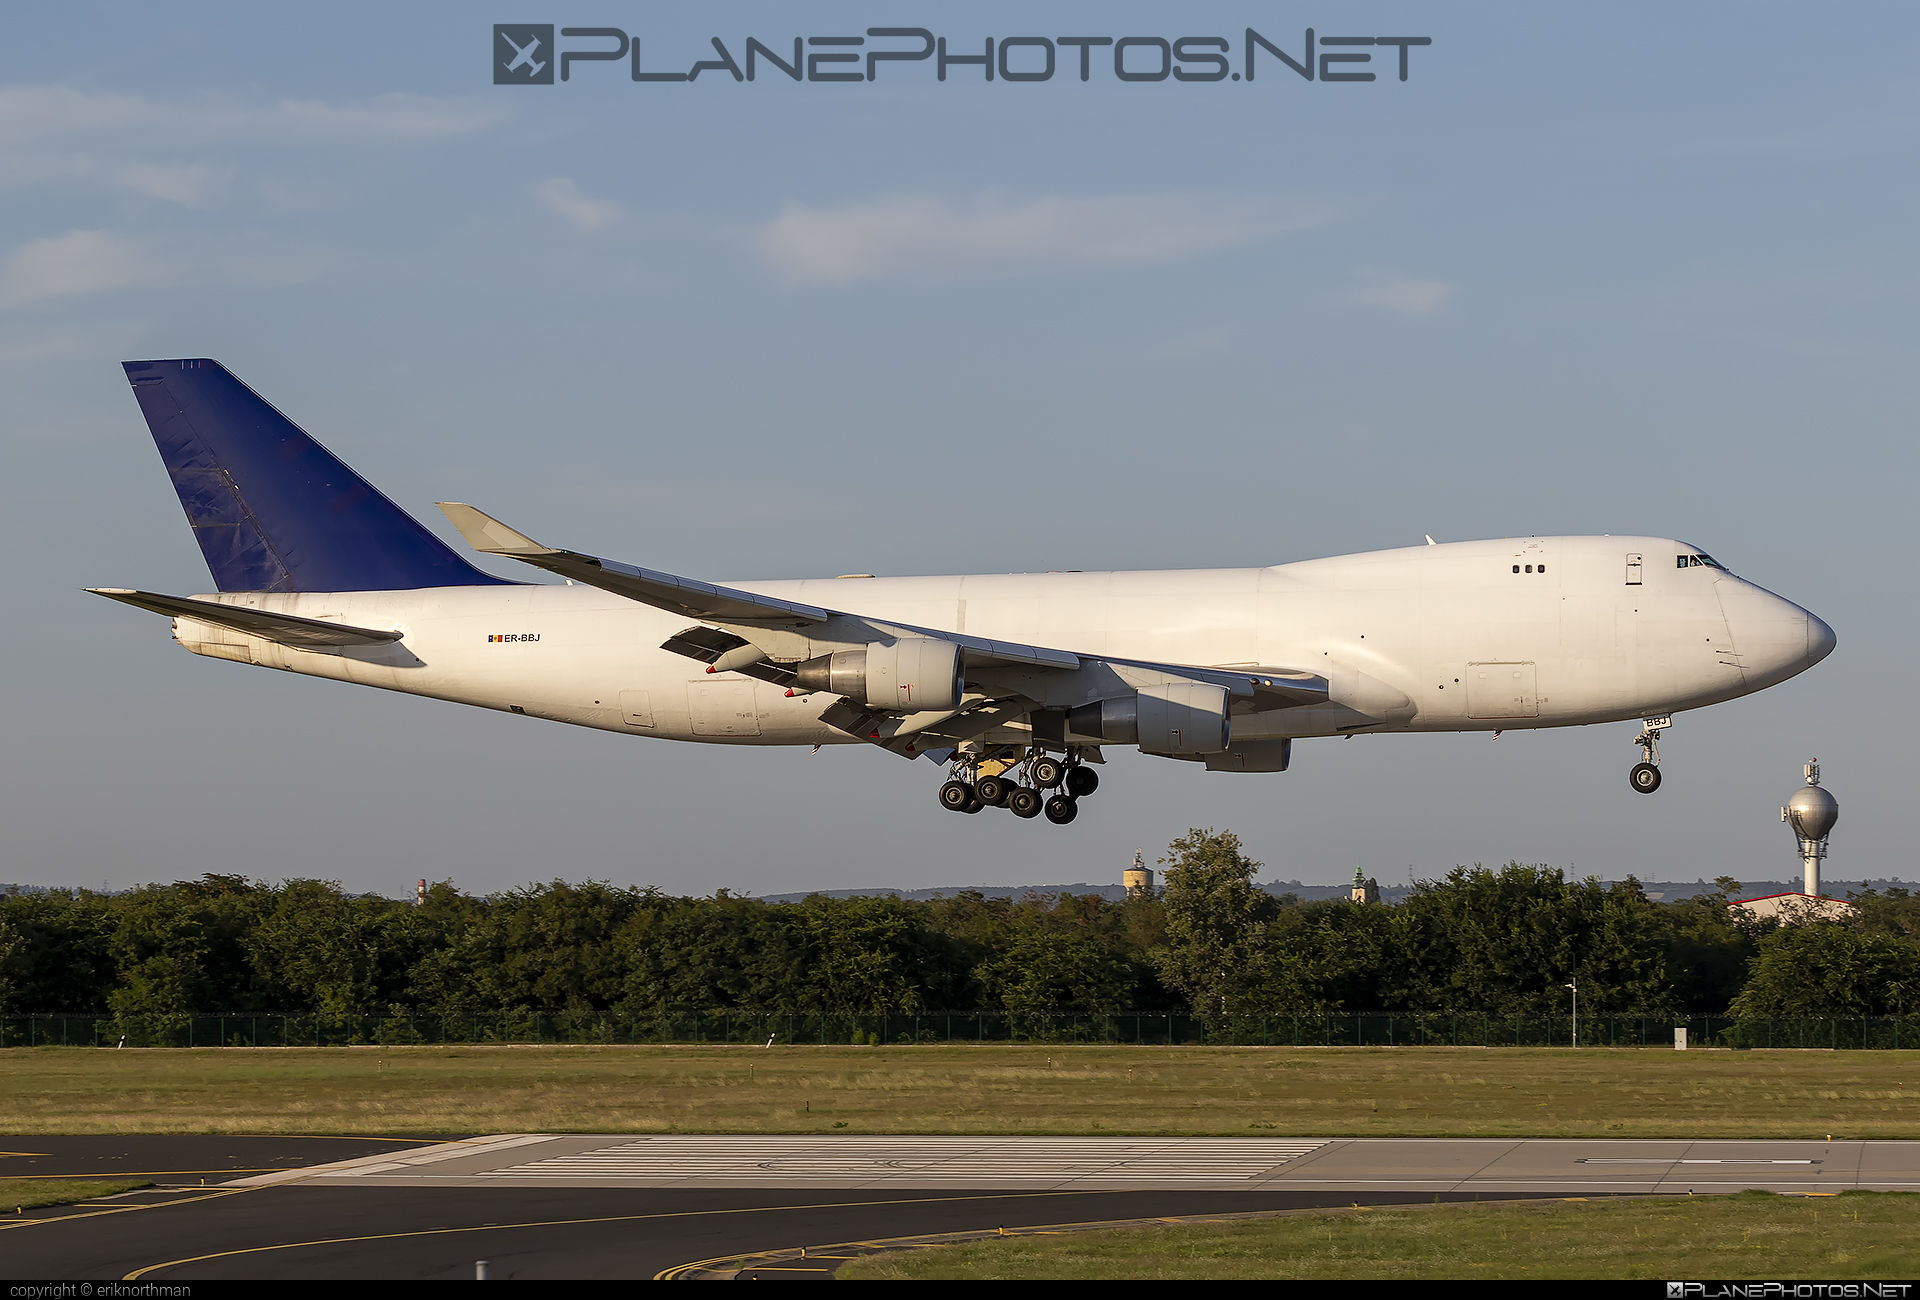 Boeing 747-400F - ER-BBJ operated by Aerotrans Cargo #aerotranscargo #b747 #boeing #boeing747 #jumbo